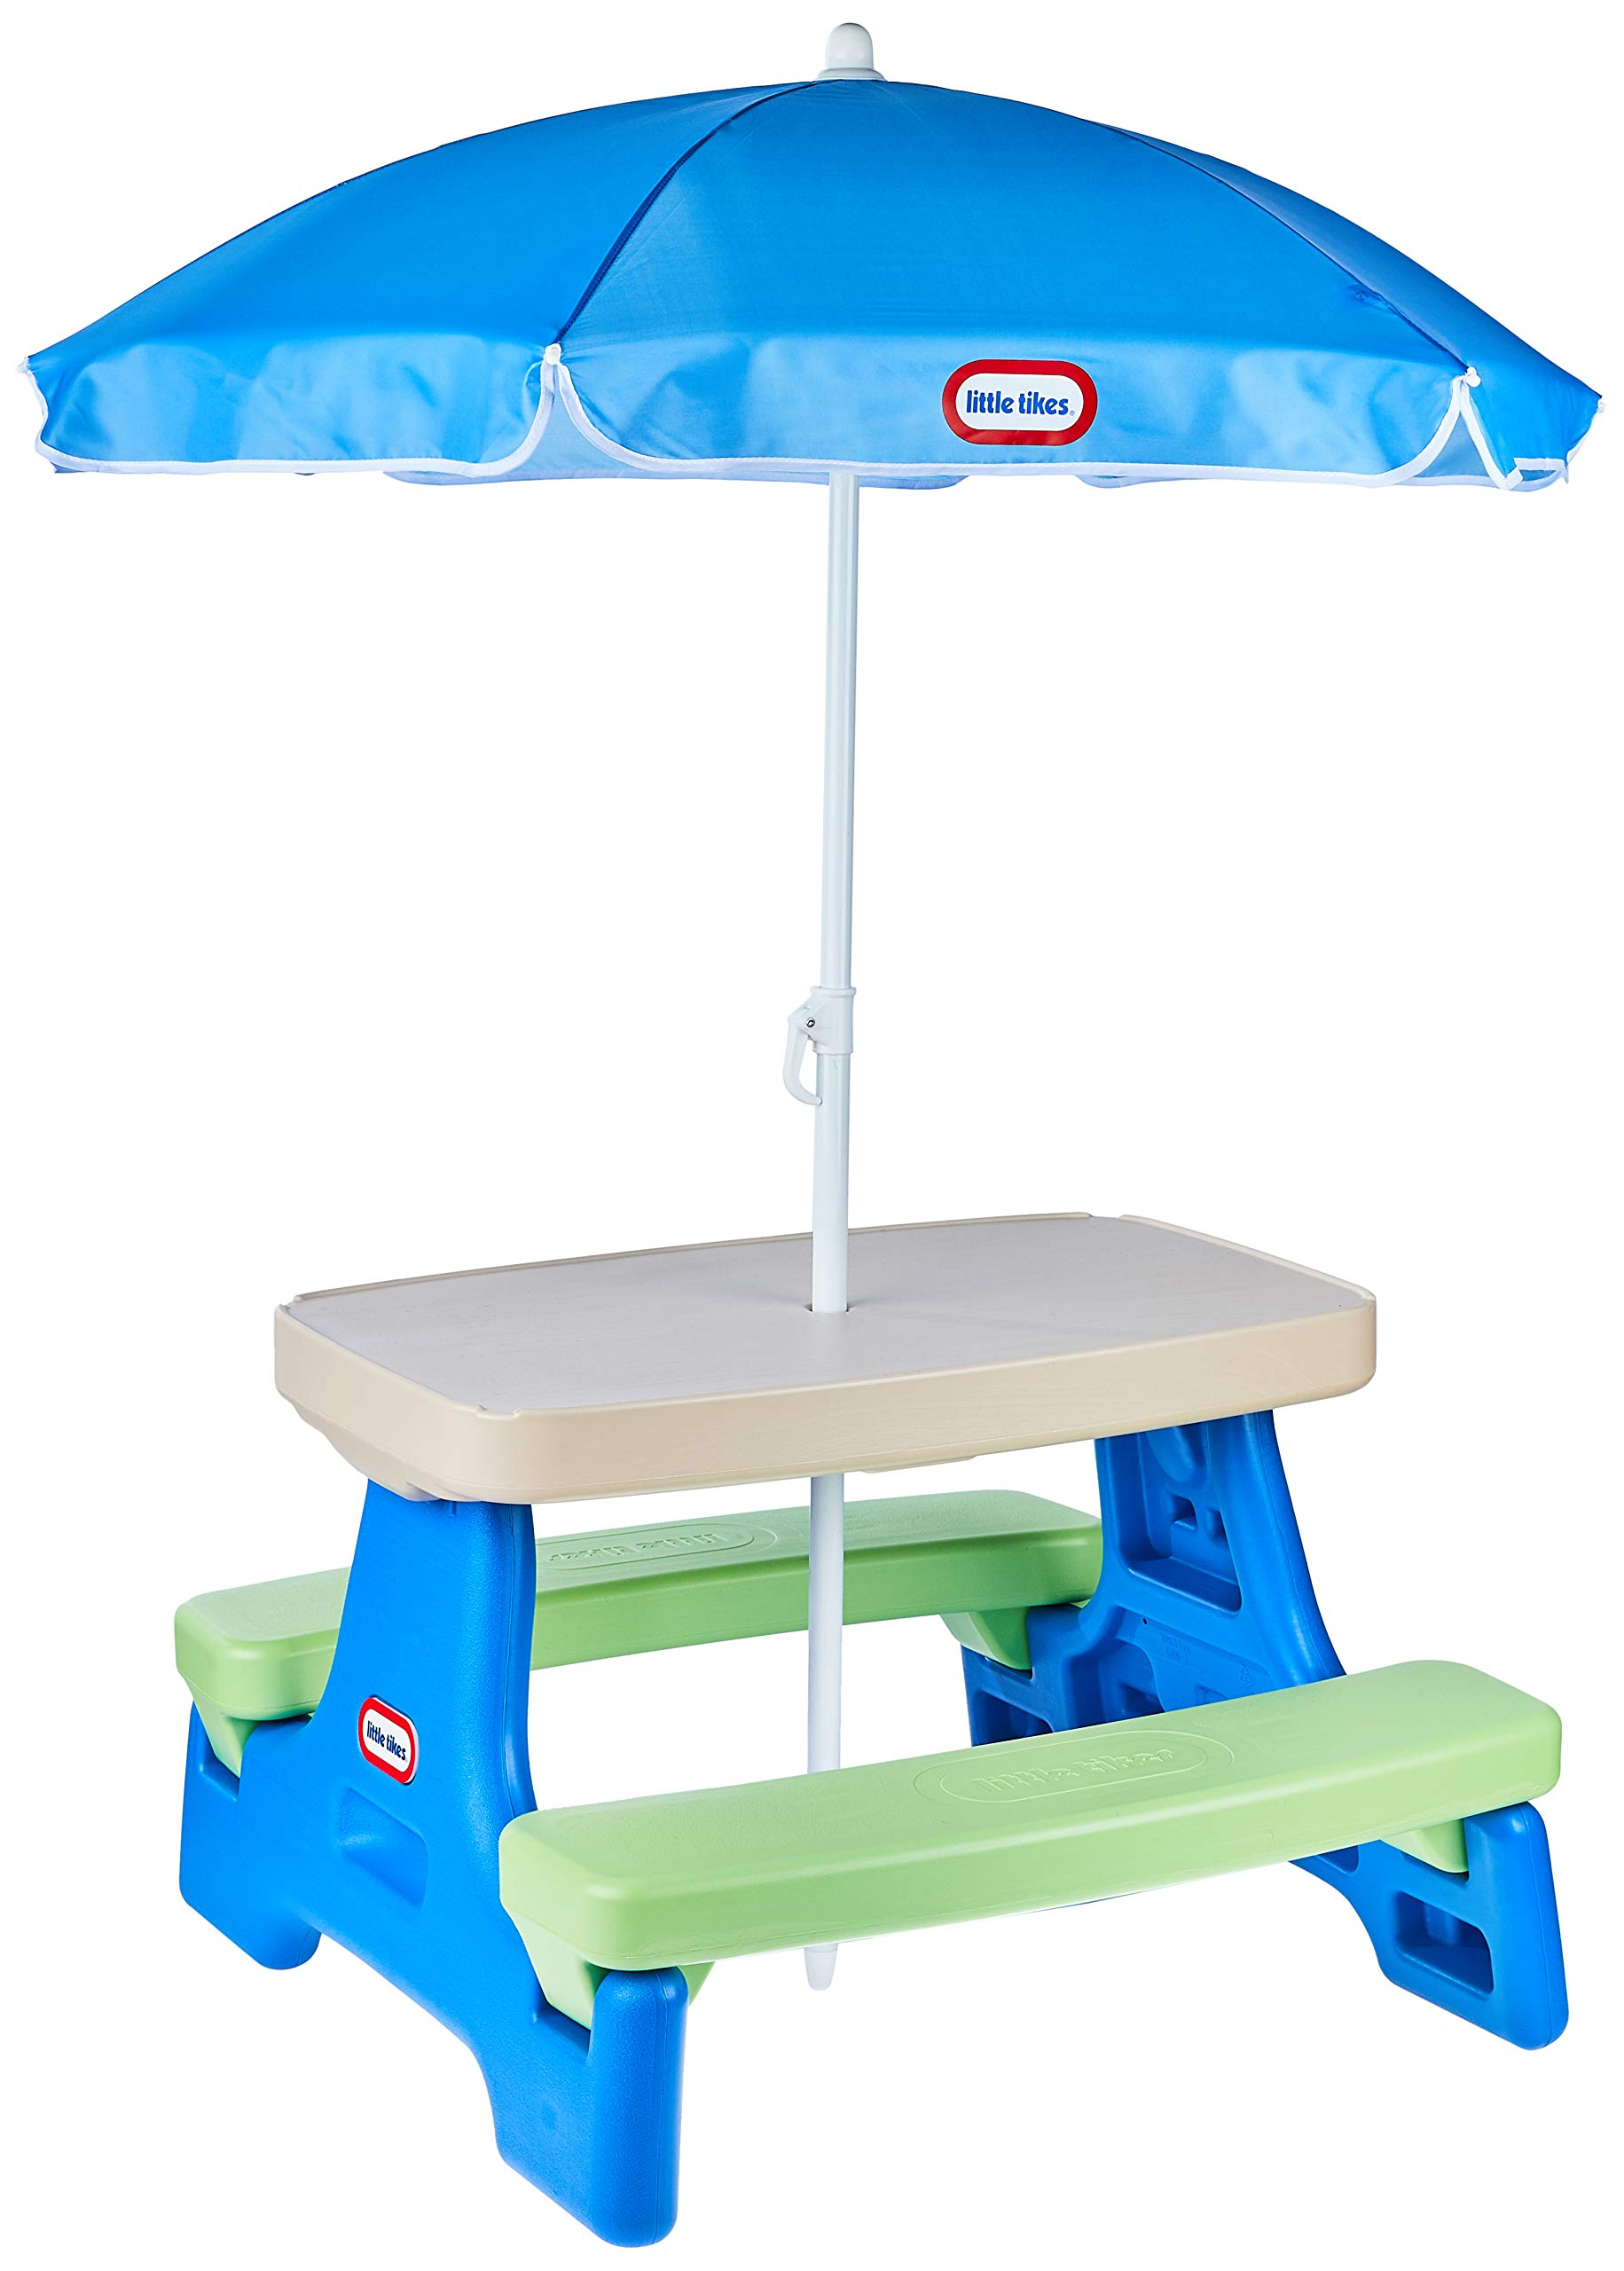 Little Tikes Easy Store Jr. Picnic Table with Umbrella - Blue / Green by Little Tikes